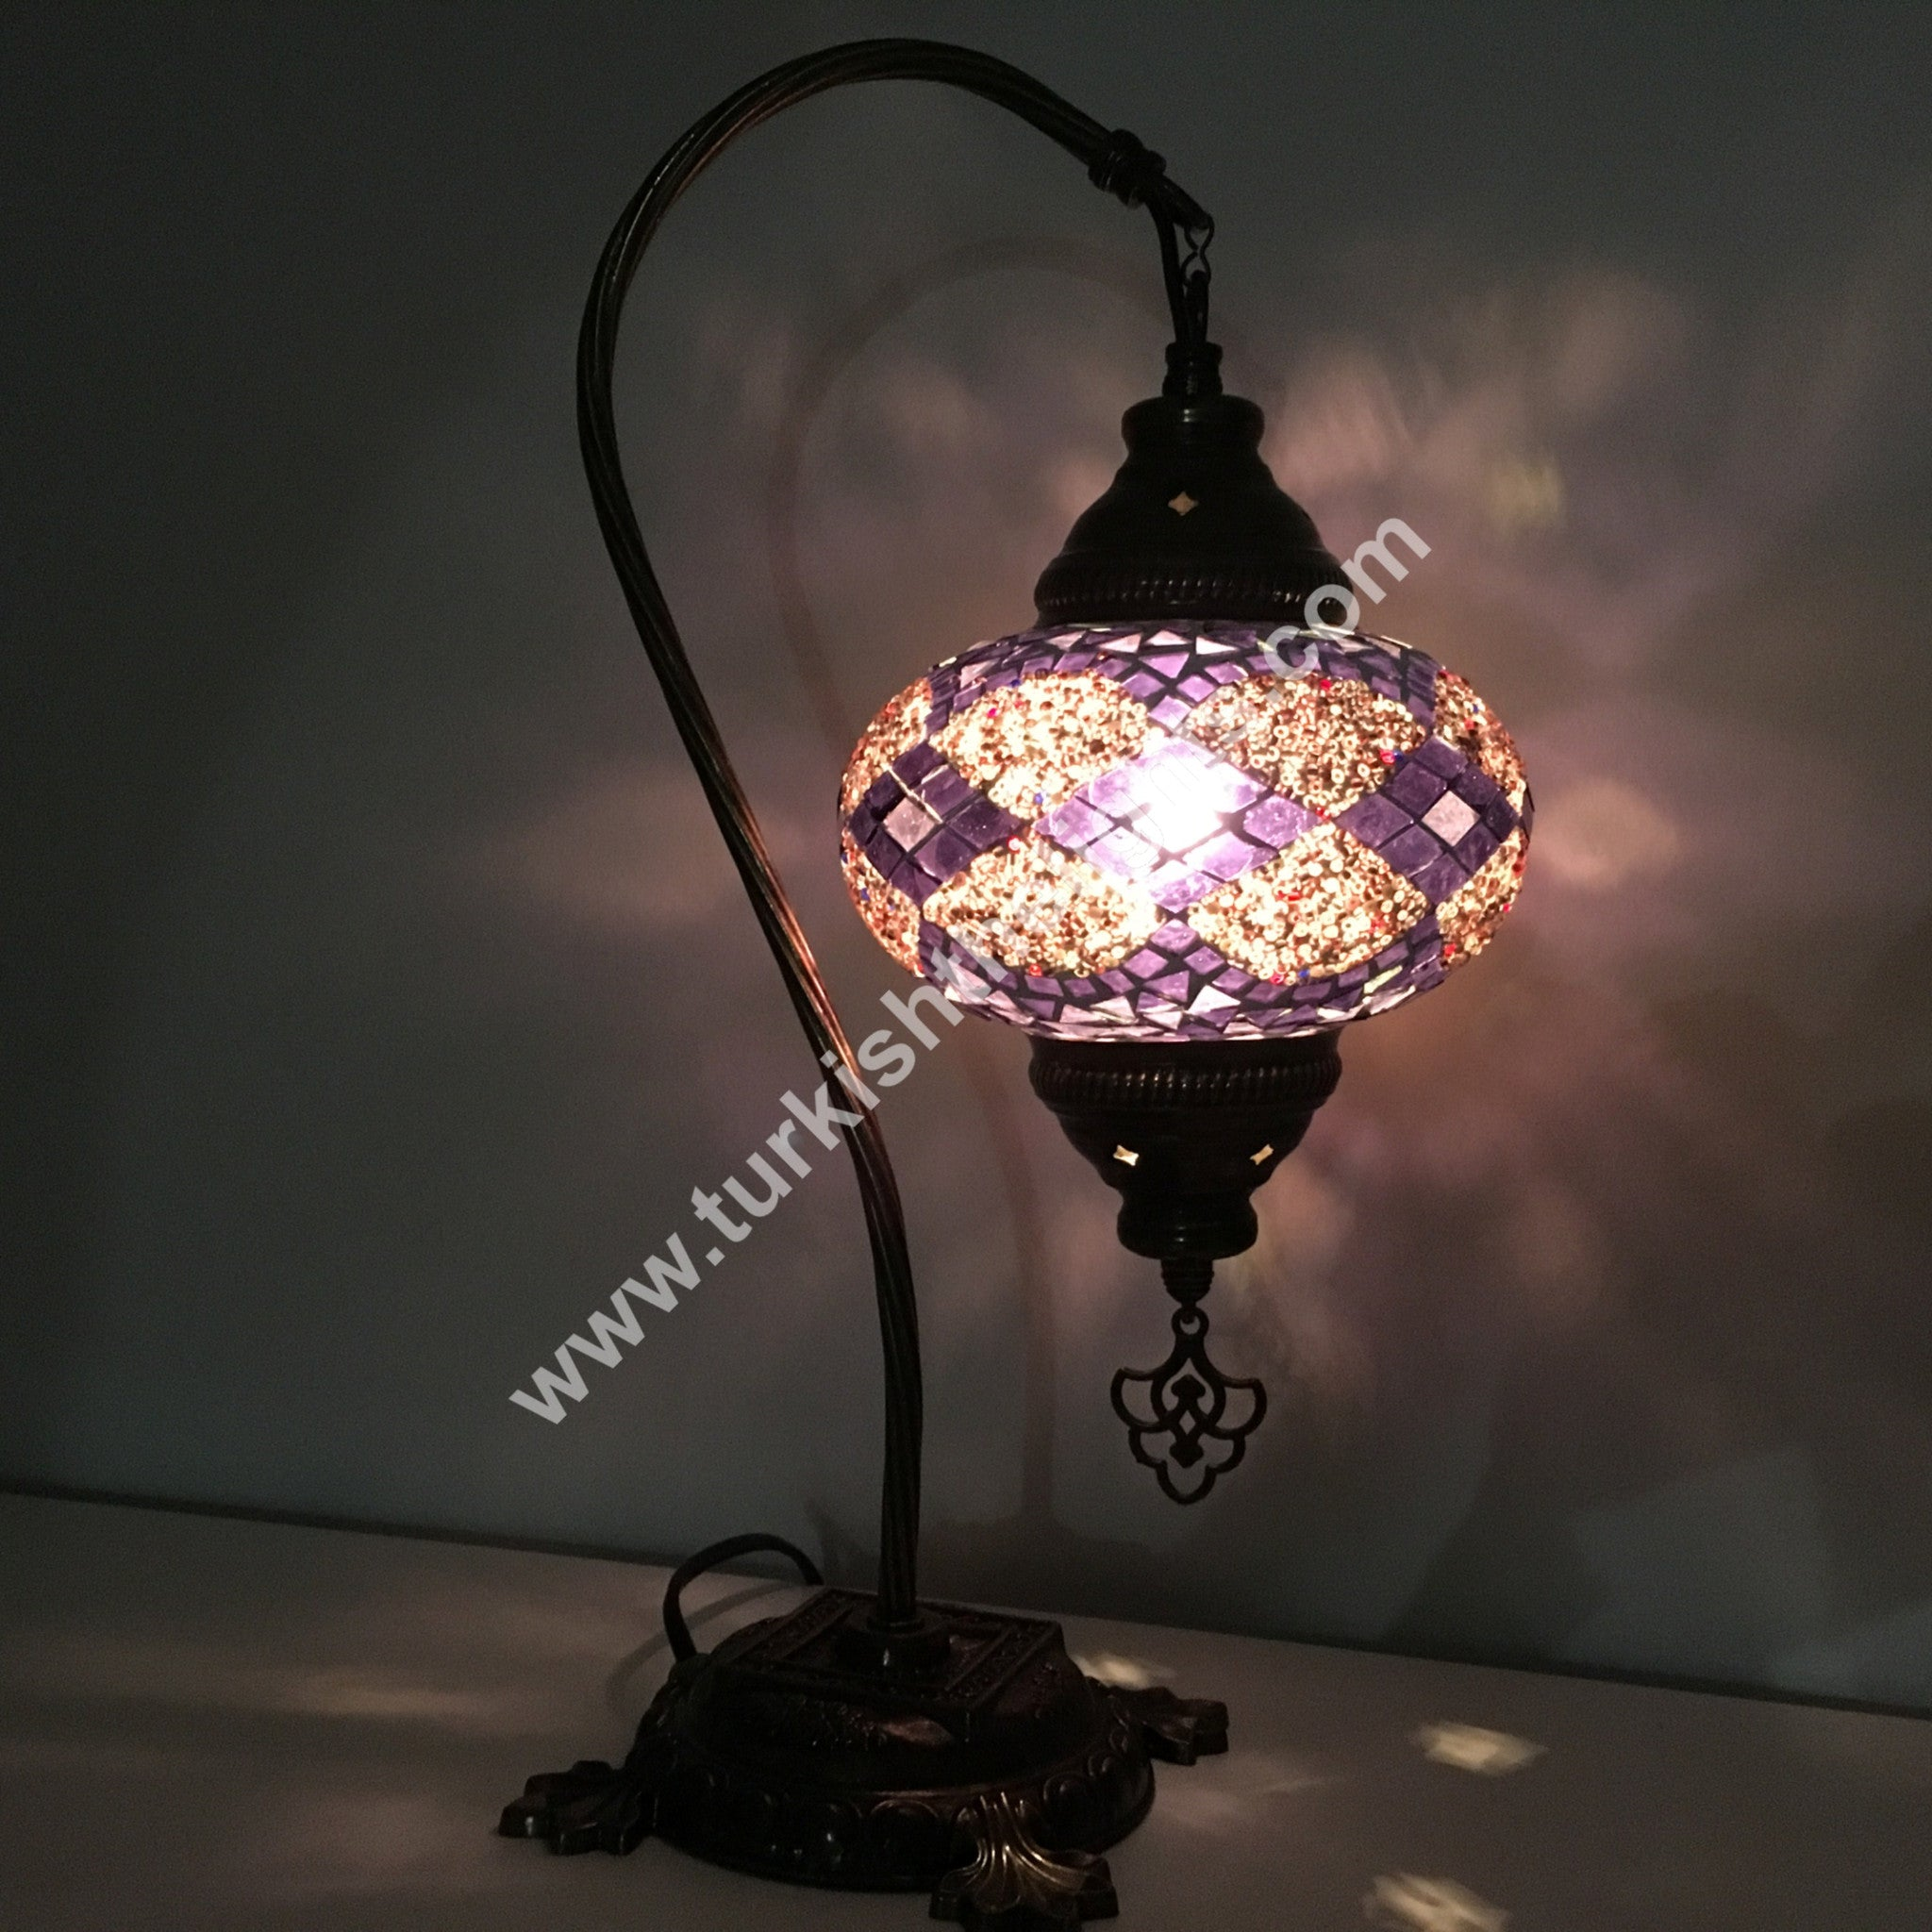 Swan Neck Mosaic Table Lamp Large Globe Special Edition Turkishlights Net